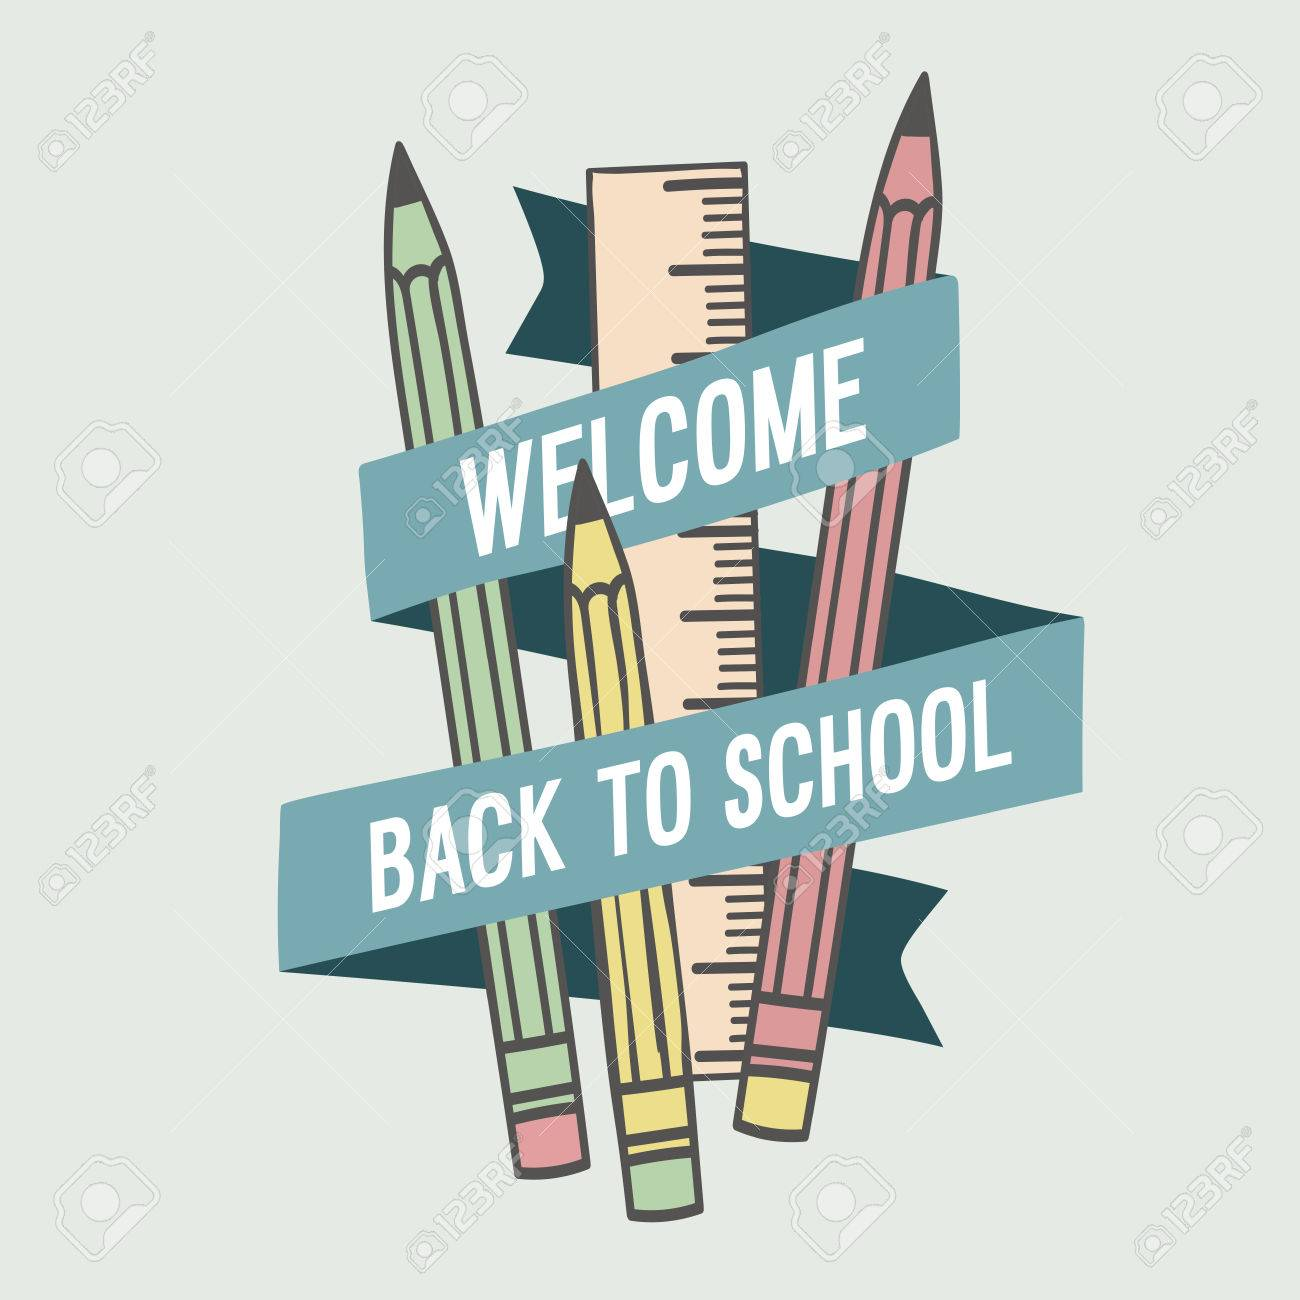 Welcome back to school. Vector illustration. - 63392301